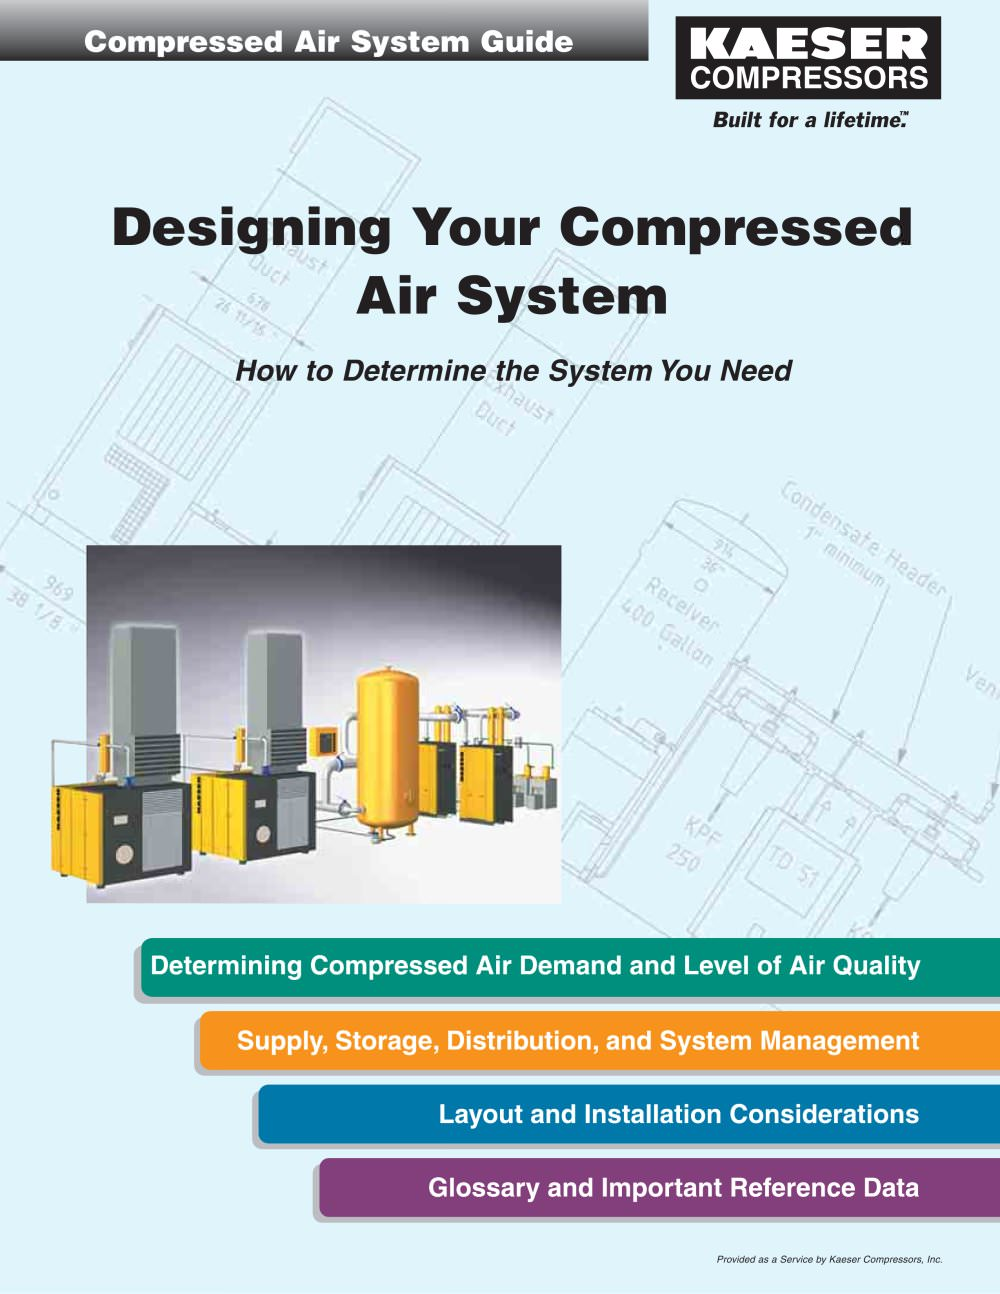 Designing Your Compressed Air System - Guide 3 - 1 / 8 Pages